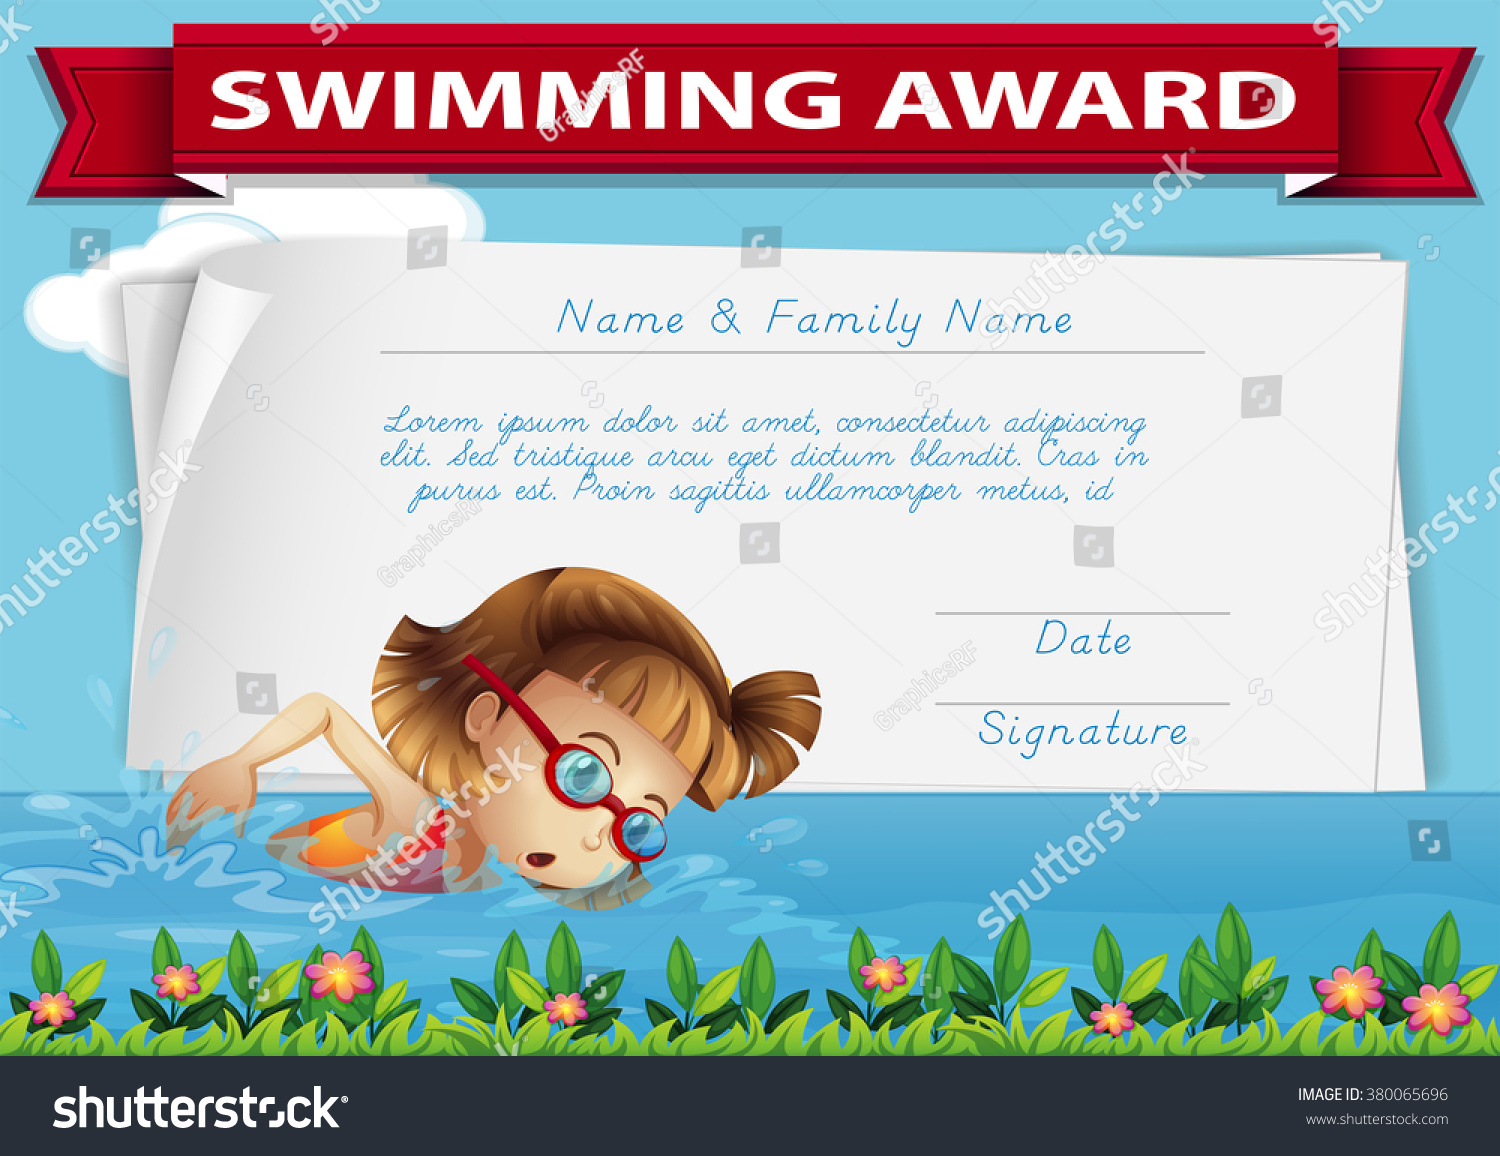 Swimming award certificate template illustration stock vector swimming award certificate template illustration xflitez Gallery